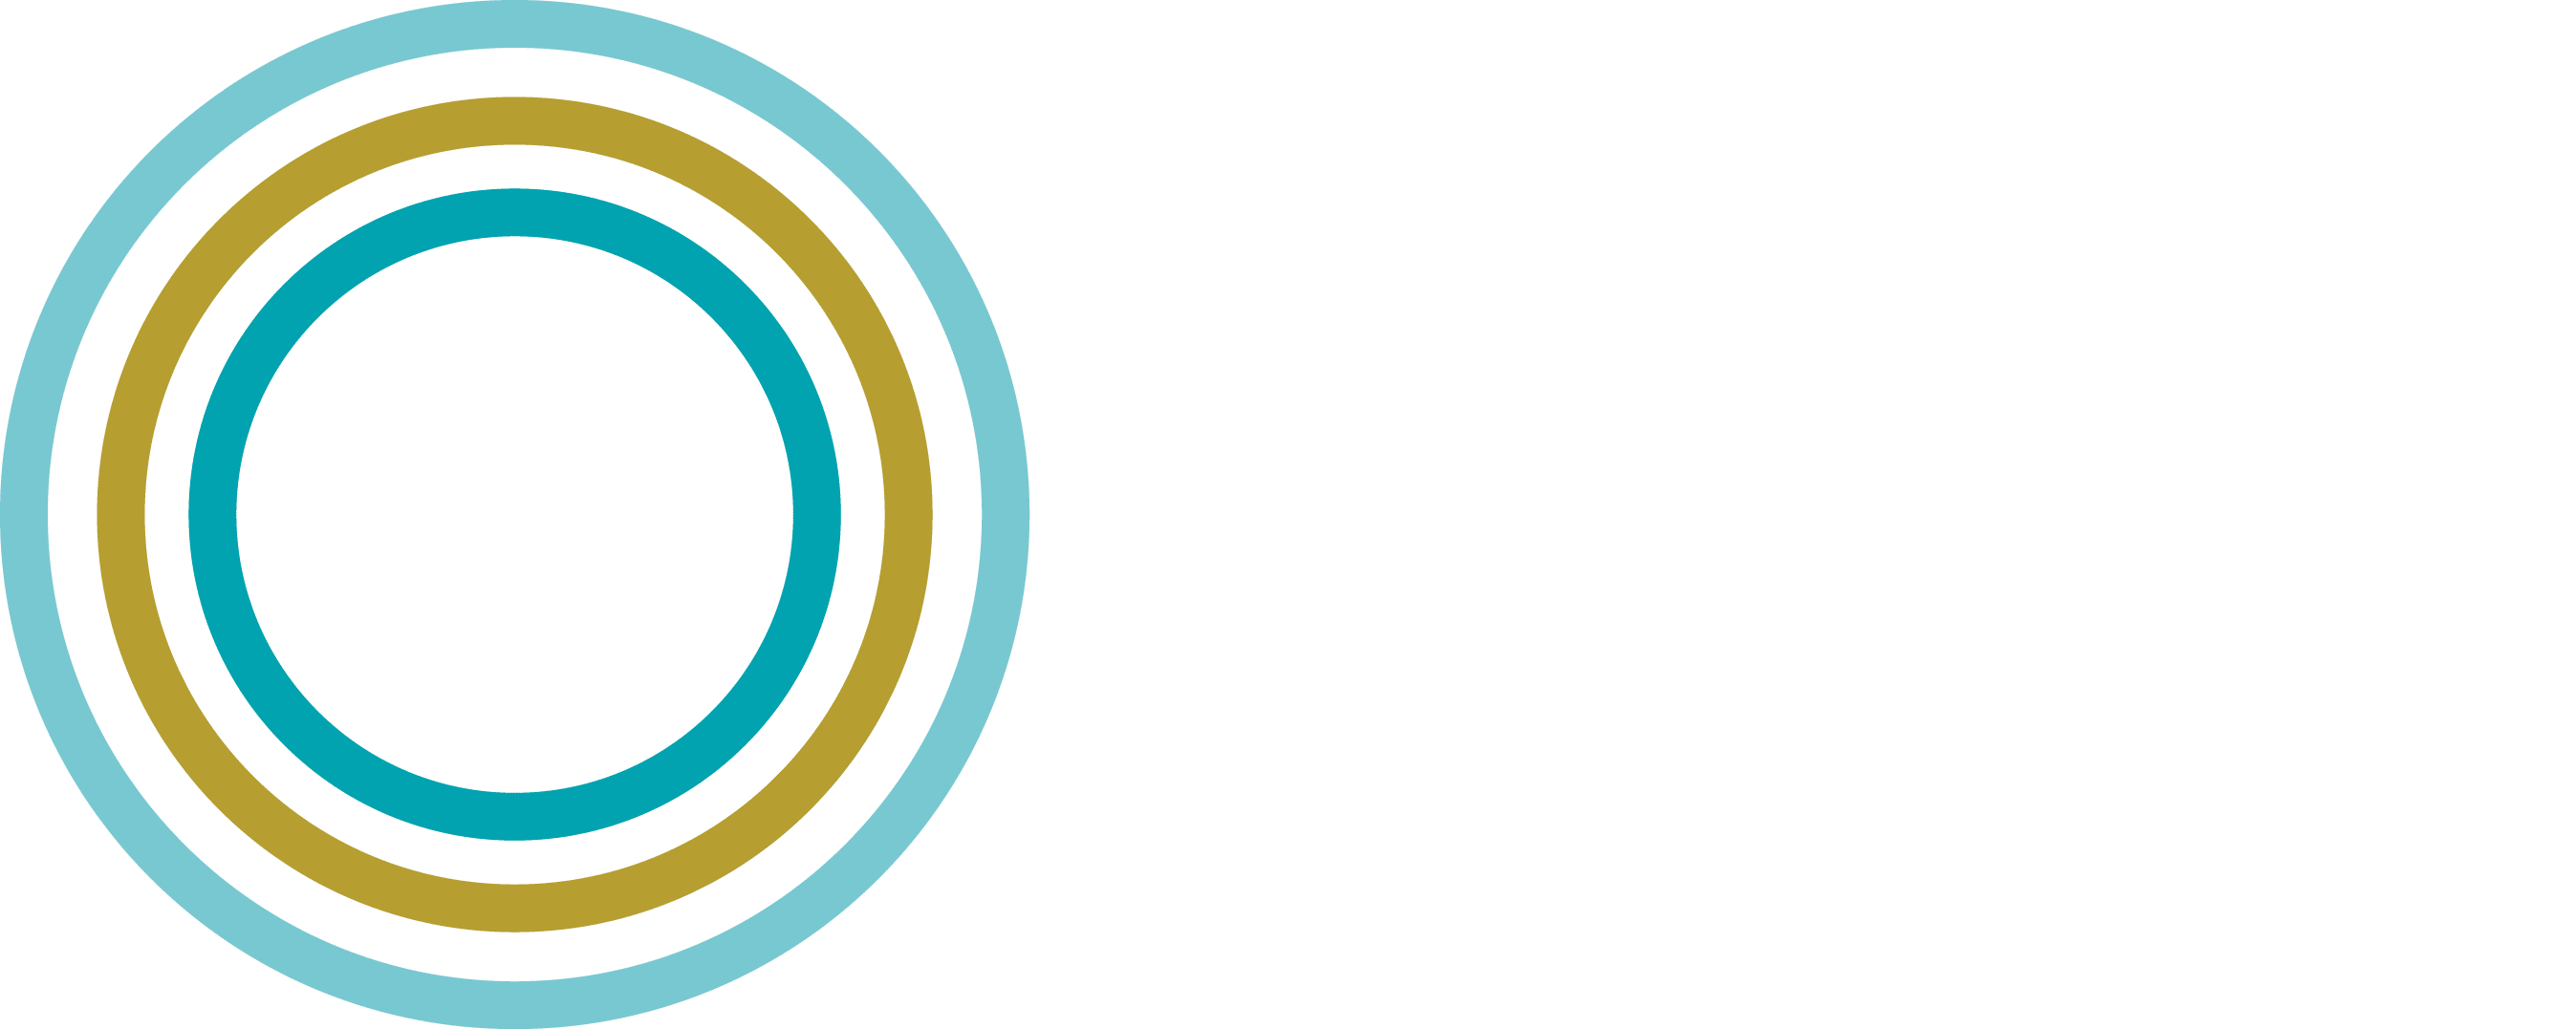 or white ecco one final rent logo for river road north apartments horizontal off bedroom eugene